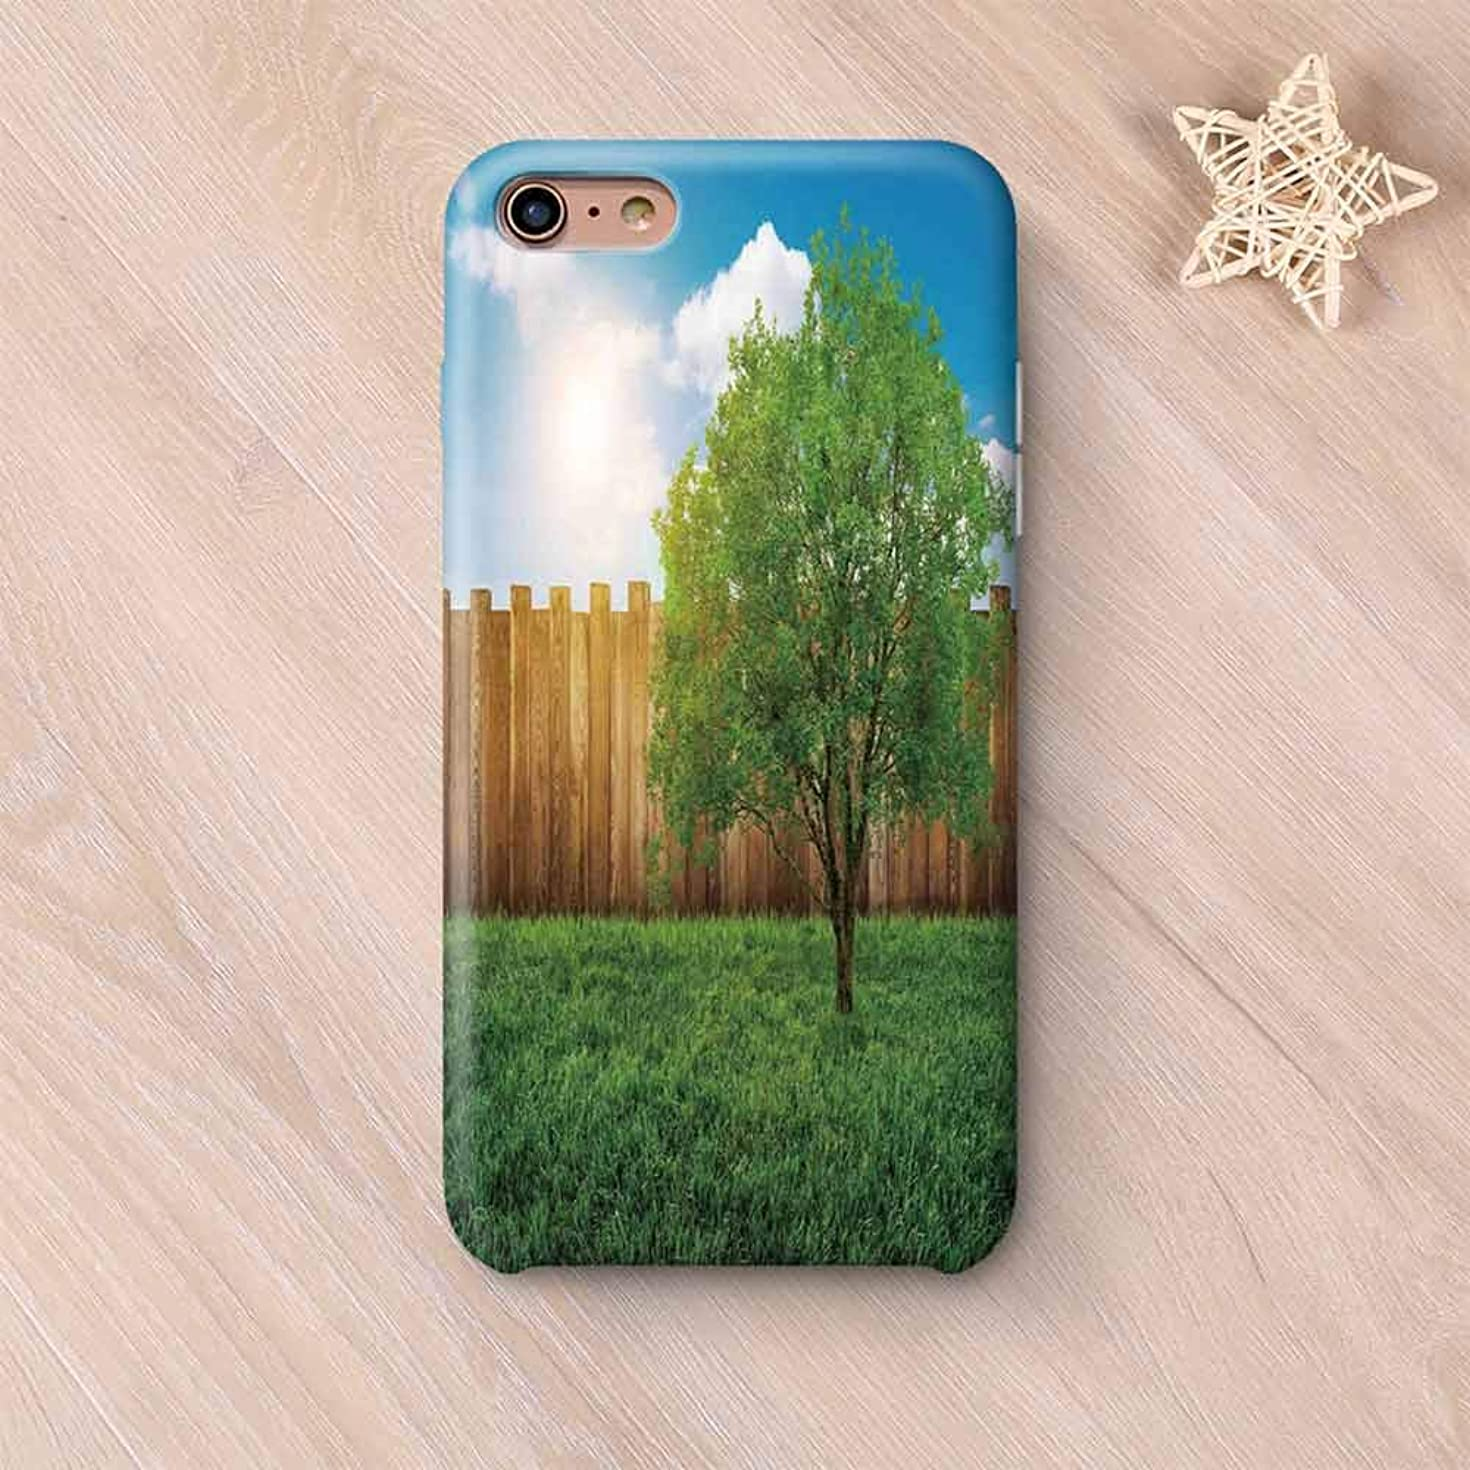 Farm House Decor Non Fading Compatible with iPhone Case,Tree of Life in Backyard of a Countryhouse with Sun Tranquil Field Design Compatible with iPhone 6 Plus / 6s Plus,iPhone 6 Plus / 6s Plus